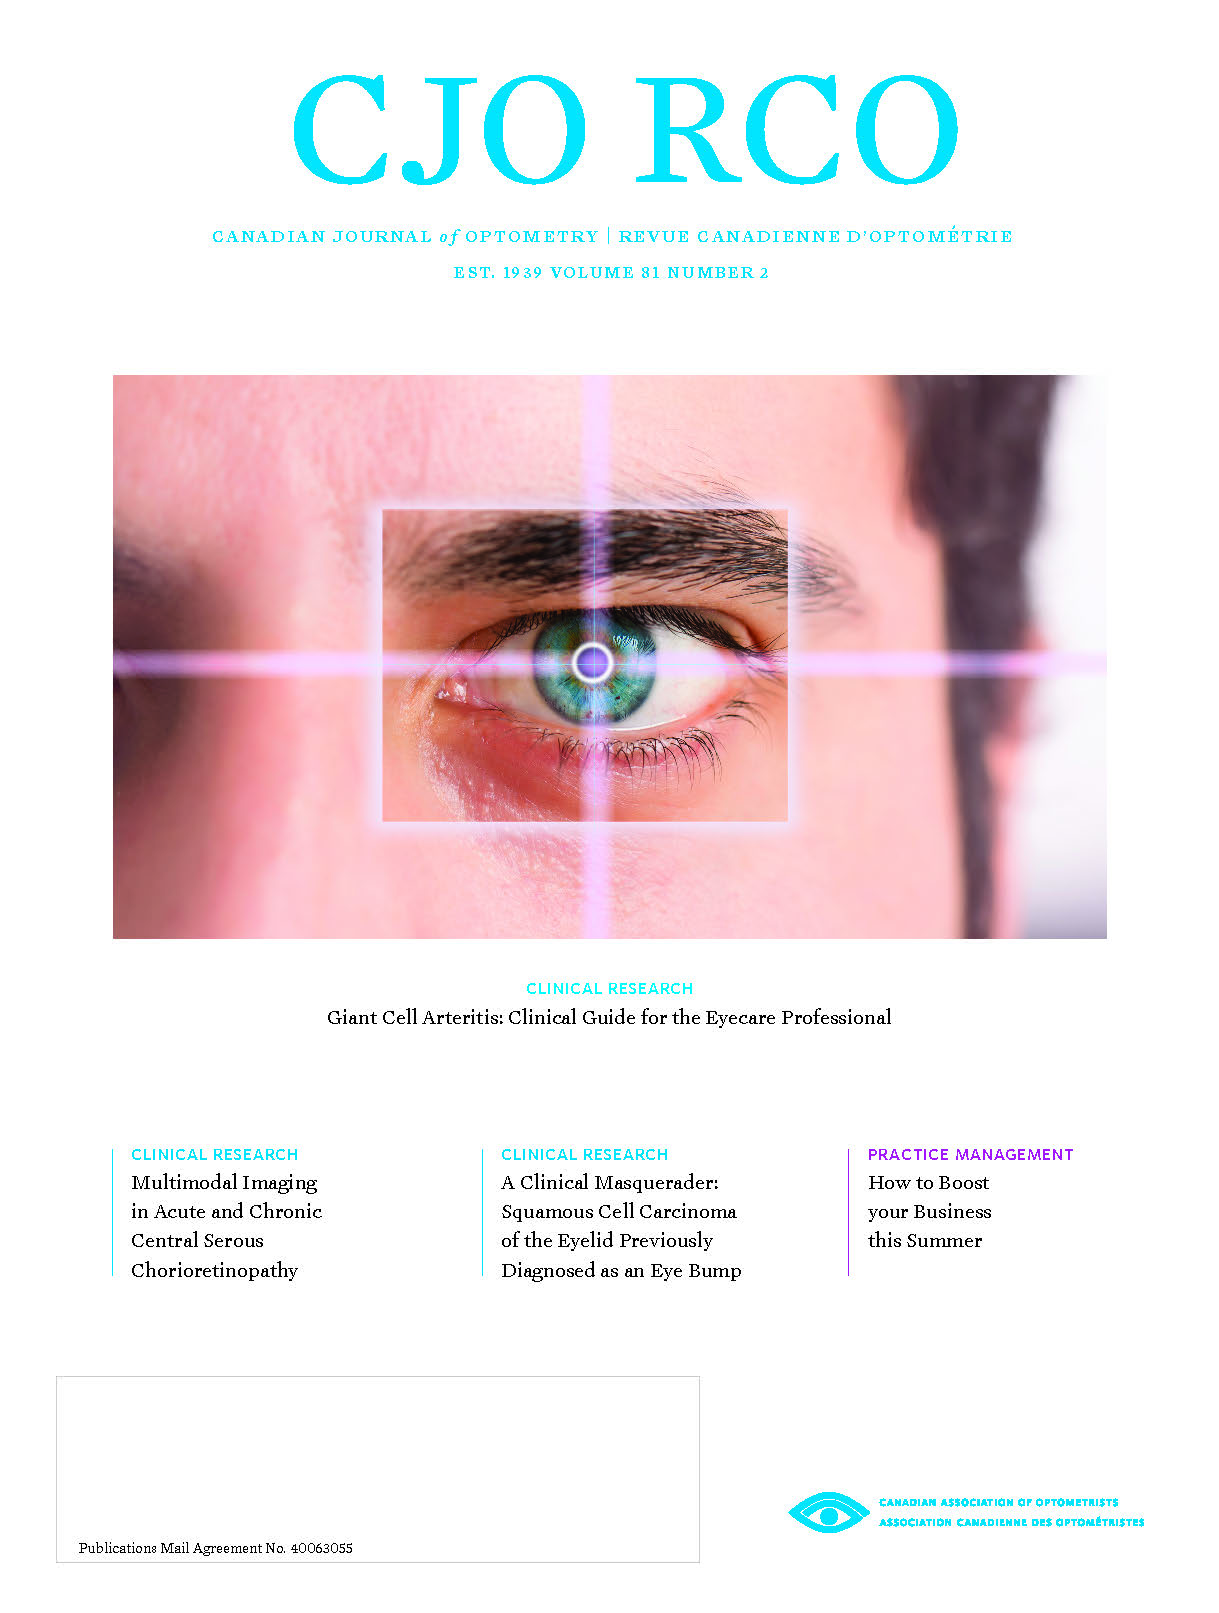 Cover of CJO Volume 79 Number 4 - Shows image of Topographical map corneal opacities present centrally in the left eye